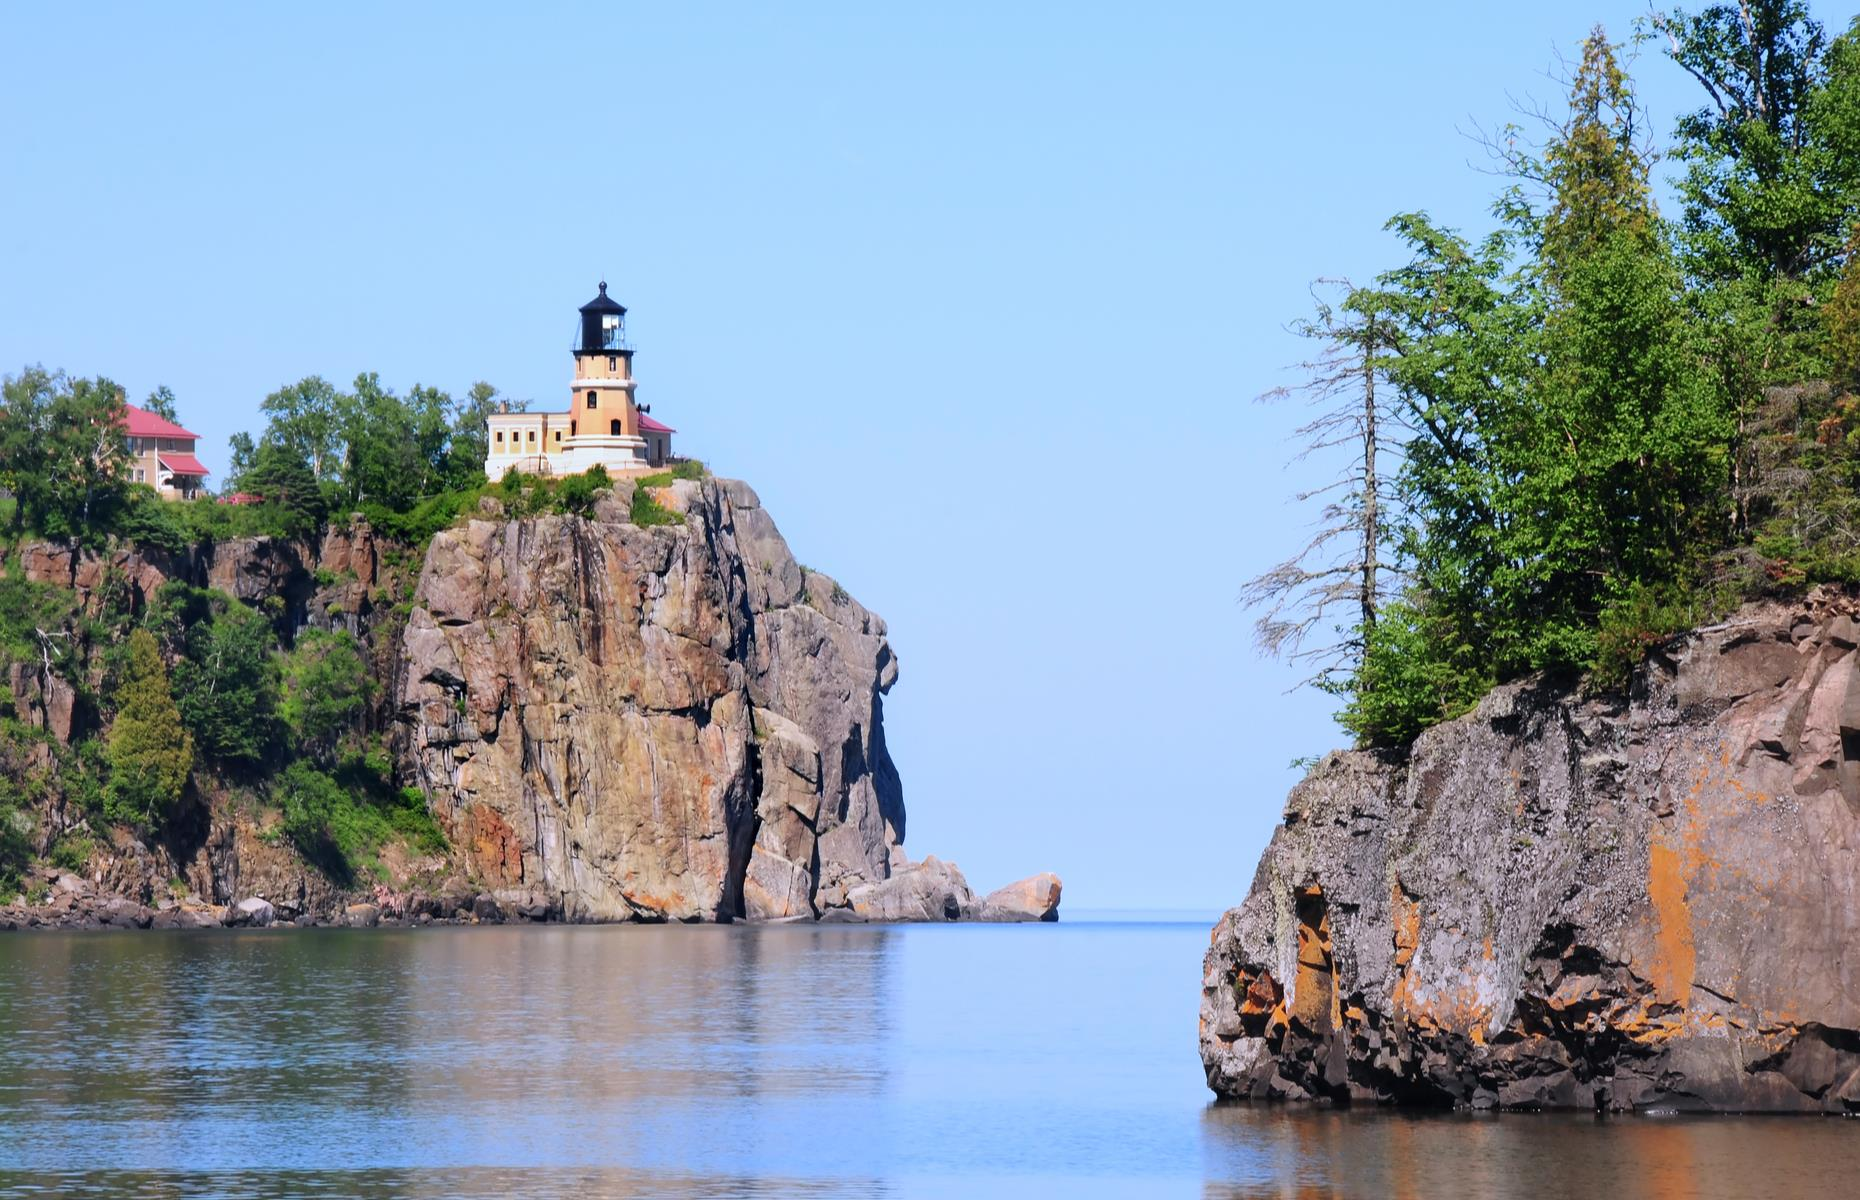 Slide 47 of 101: There are scenic spots aplenty along the North Shore, and the Split Rock Lighthouse State Park (pictured) particularly loves the camera. Aside from its majestic cliff-top lighthouse, the park has opportunities for wildlife viewing and around three miles of hiking trails along the lakeshore (check current park protocols here). There are typically plenty of great places to overnight in the Grand Marais area, but be sure to do your research before you travel.